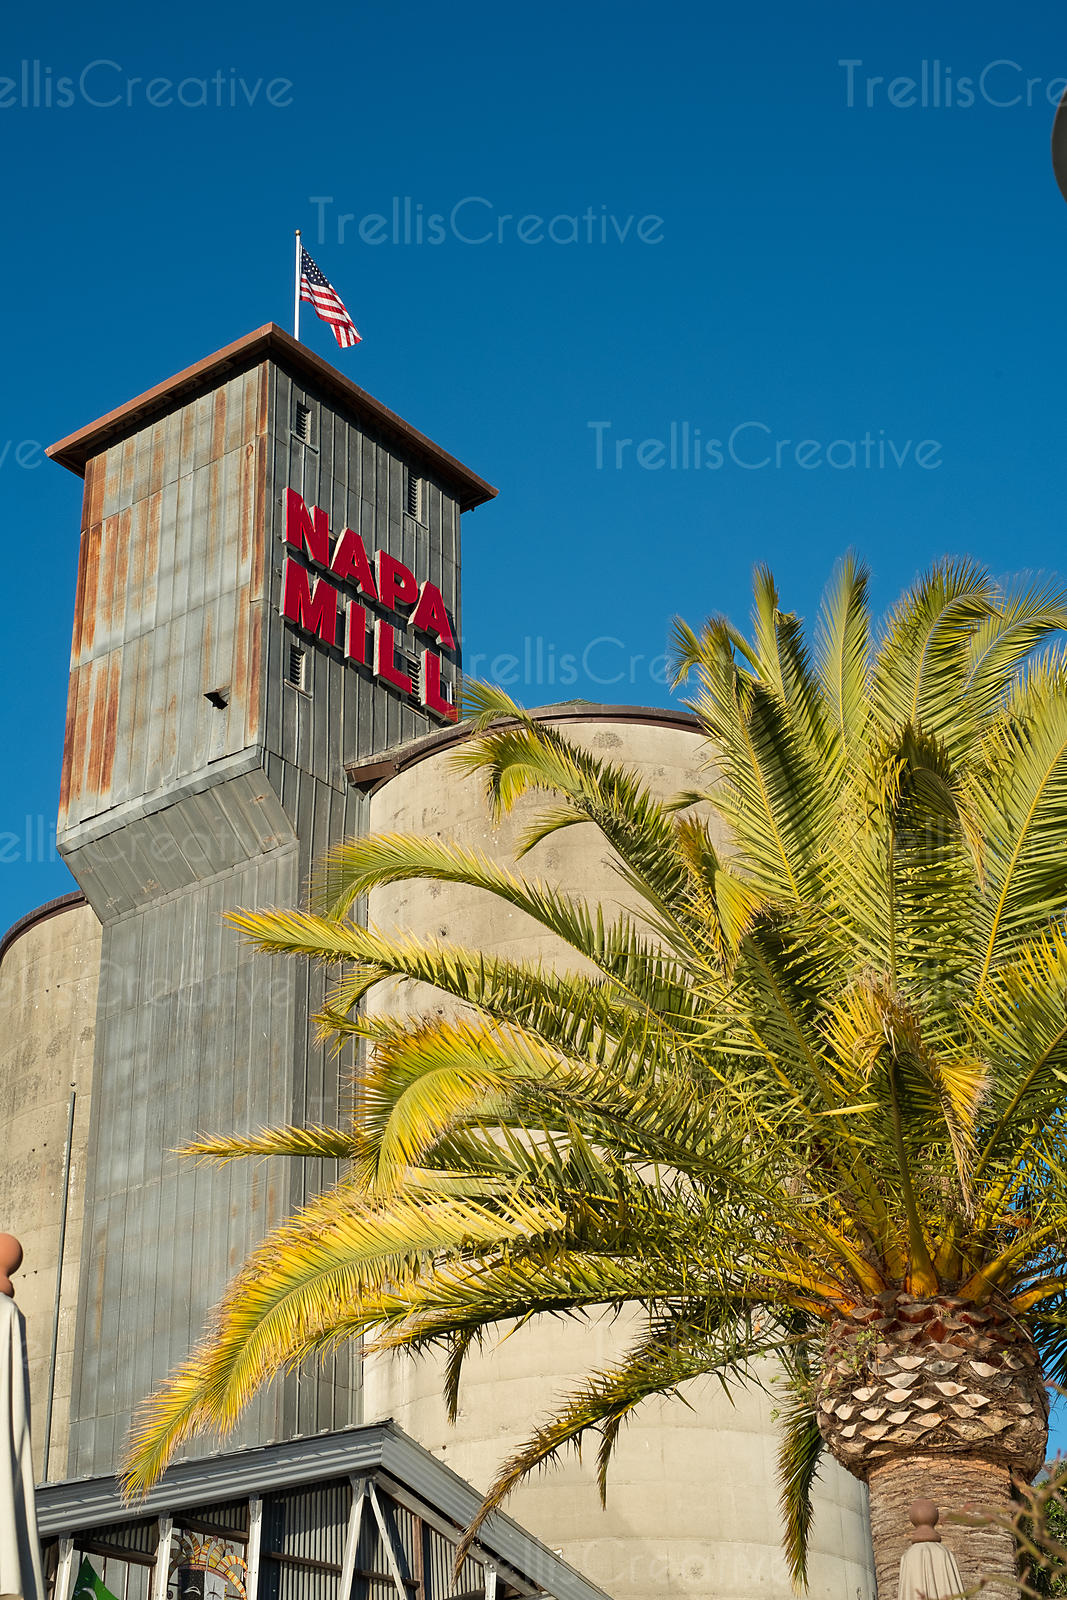 Exterior of the Napa Mill with a palm tree and the American flag flying high